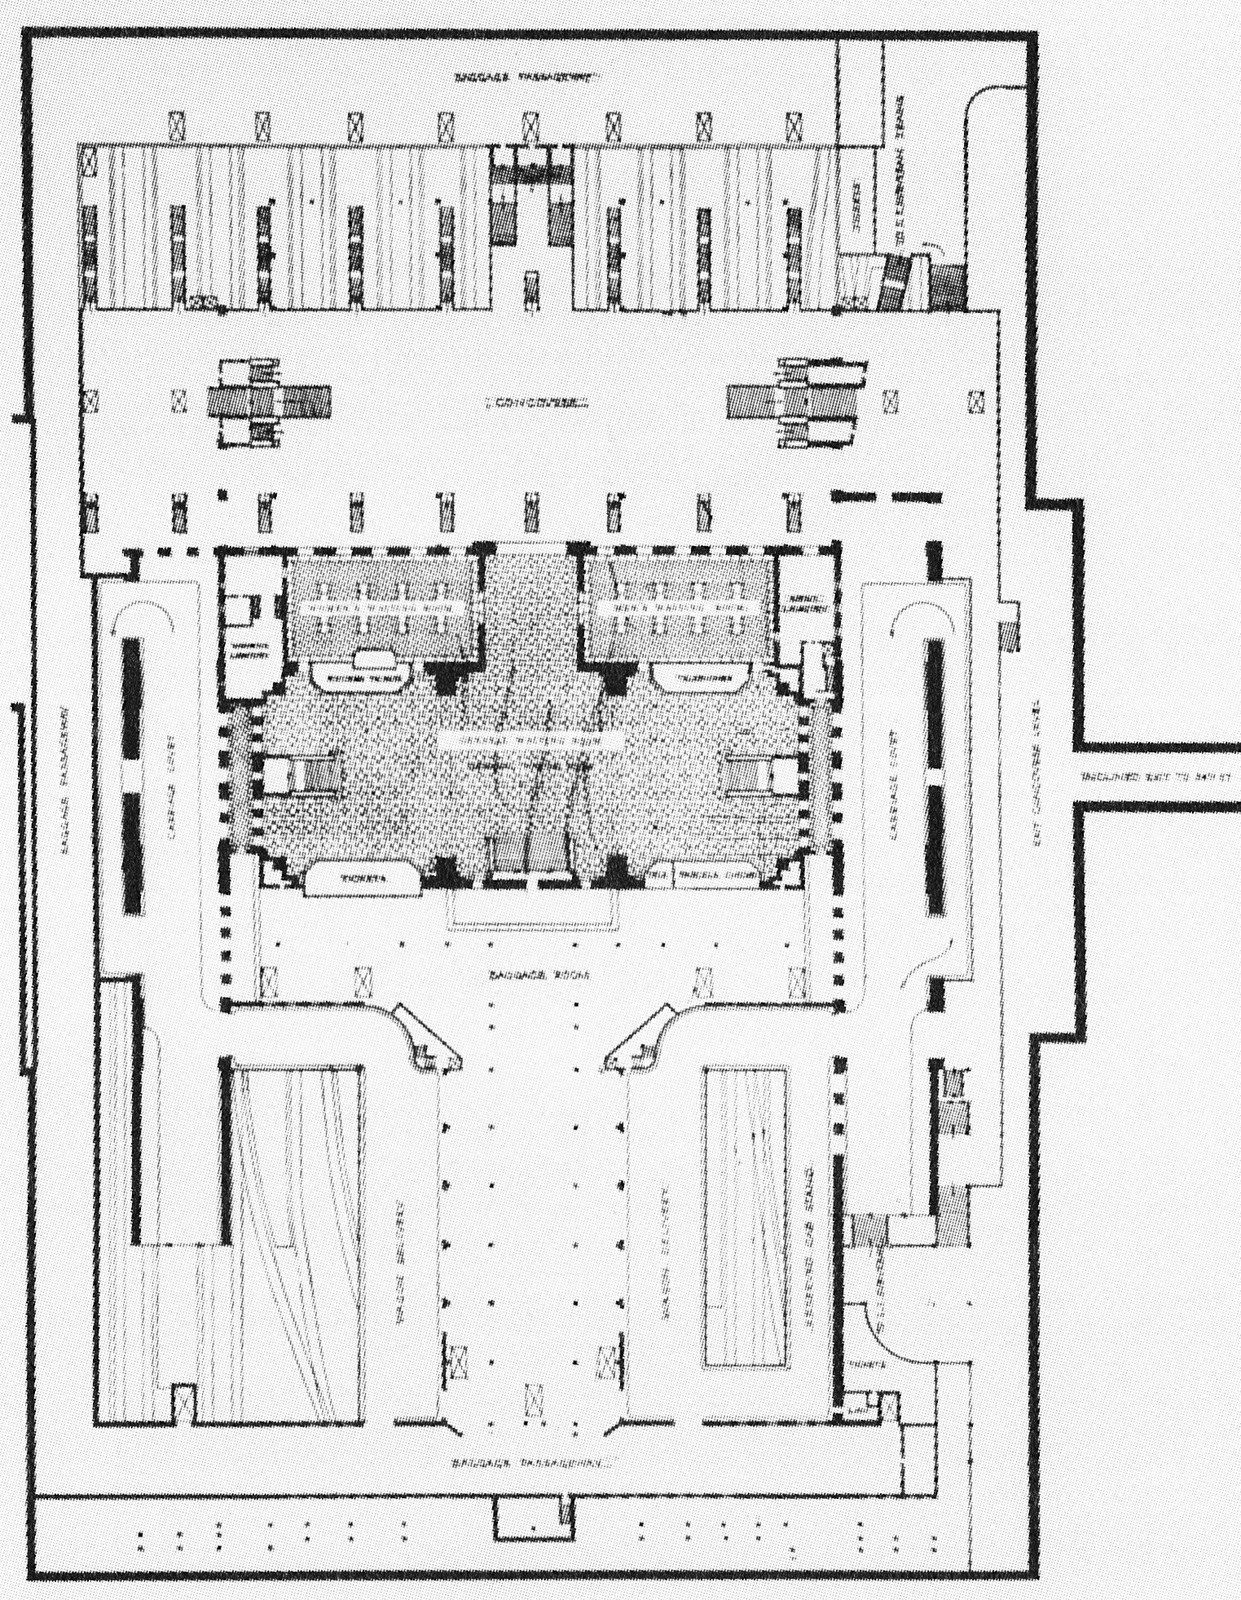 Penn Station Pathfinder Historic Floorplans